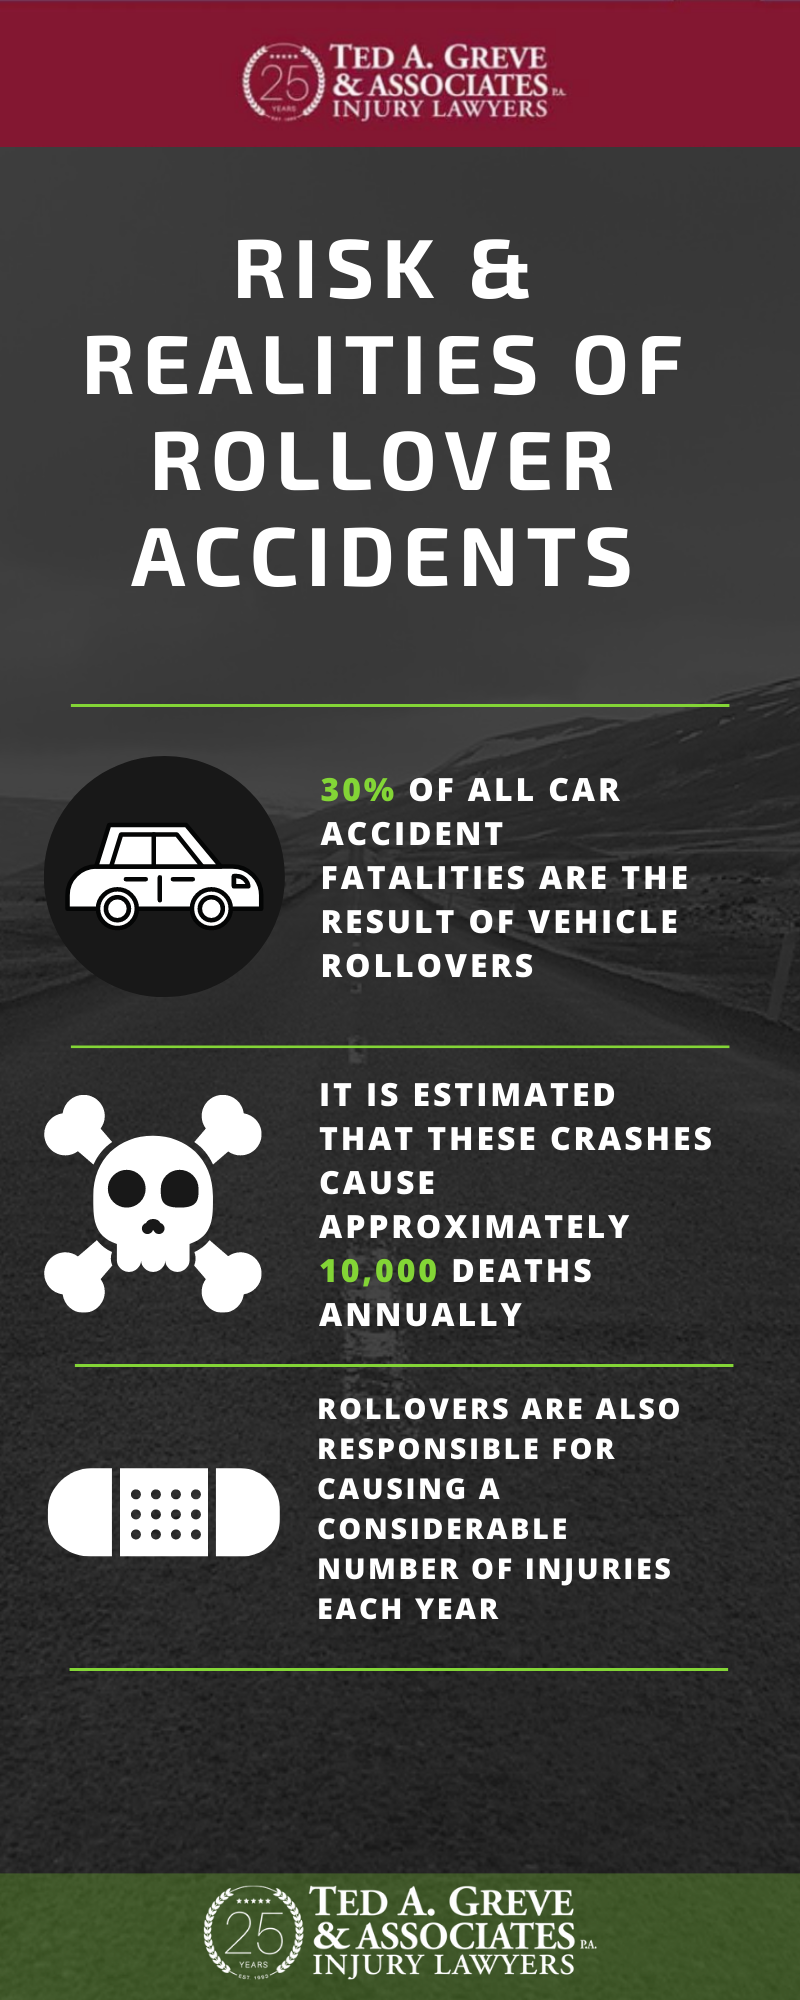 Ted Greve Atlanta Rollover Accident Infographic